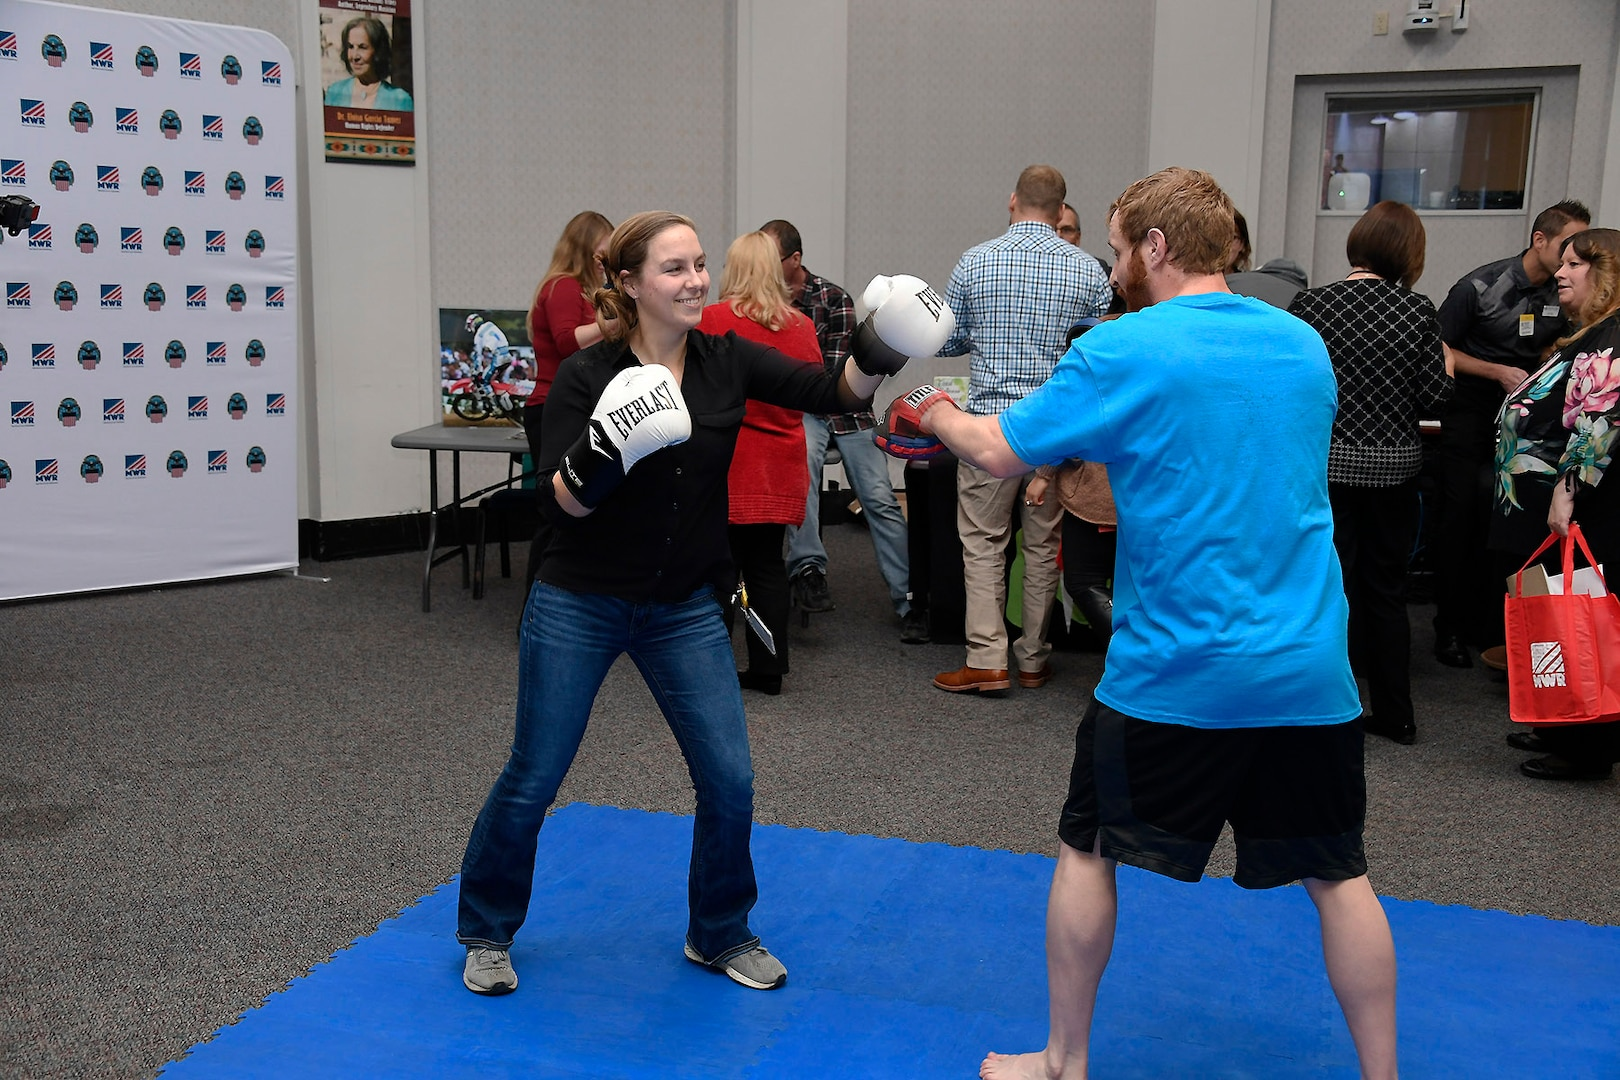 Kristy Hardin (left) throws some training punches with MWR Personal Trainer Chisholm.